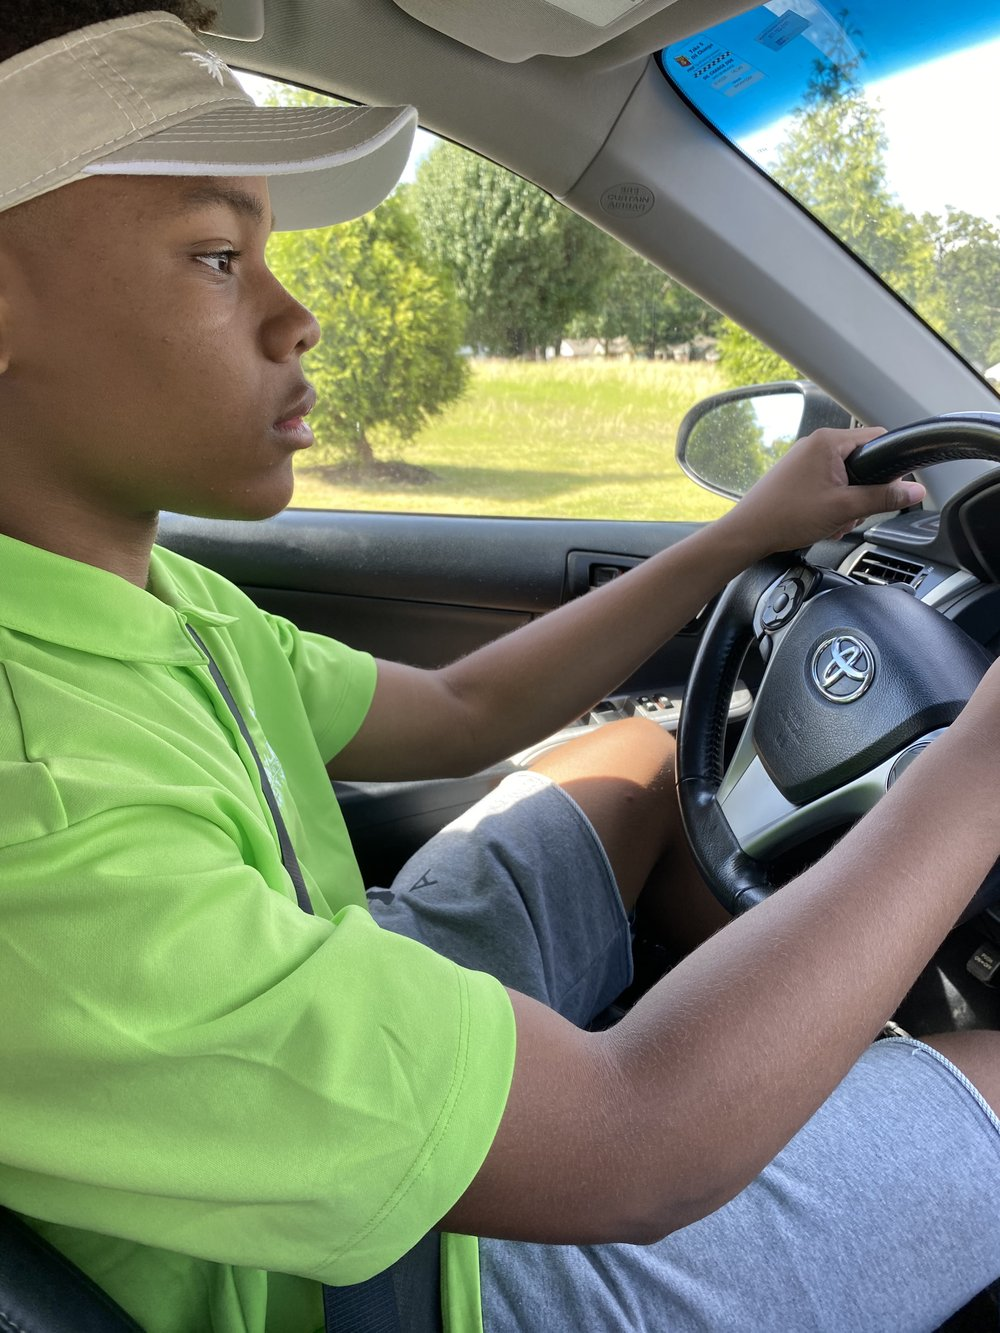 Fifteen-year-old Addison Shelton of Maumelle has been preparing to drive for a year and recently passed his driving skills test. (Special to the Democrat-Gazette/Yolanda Shelton)